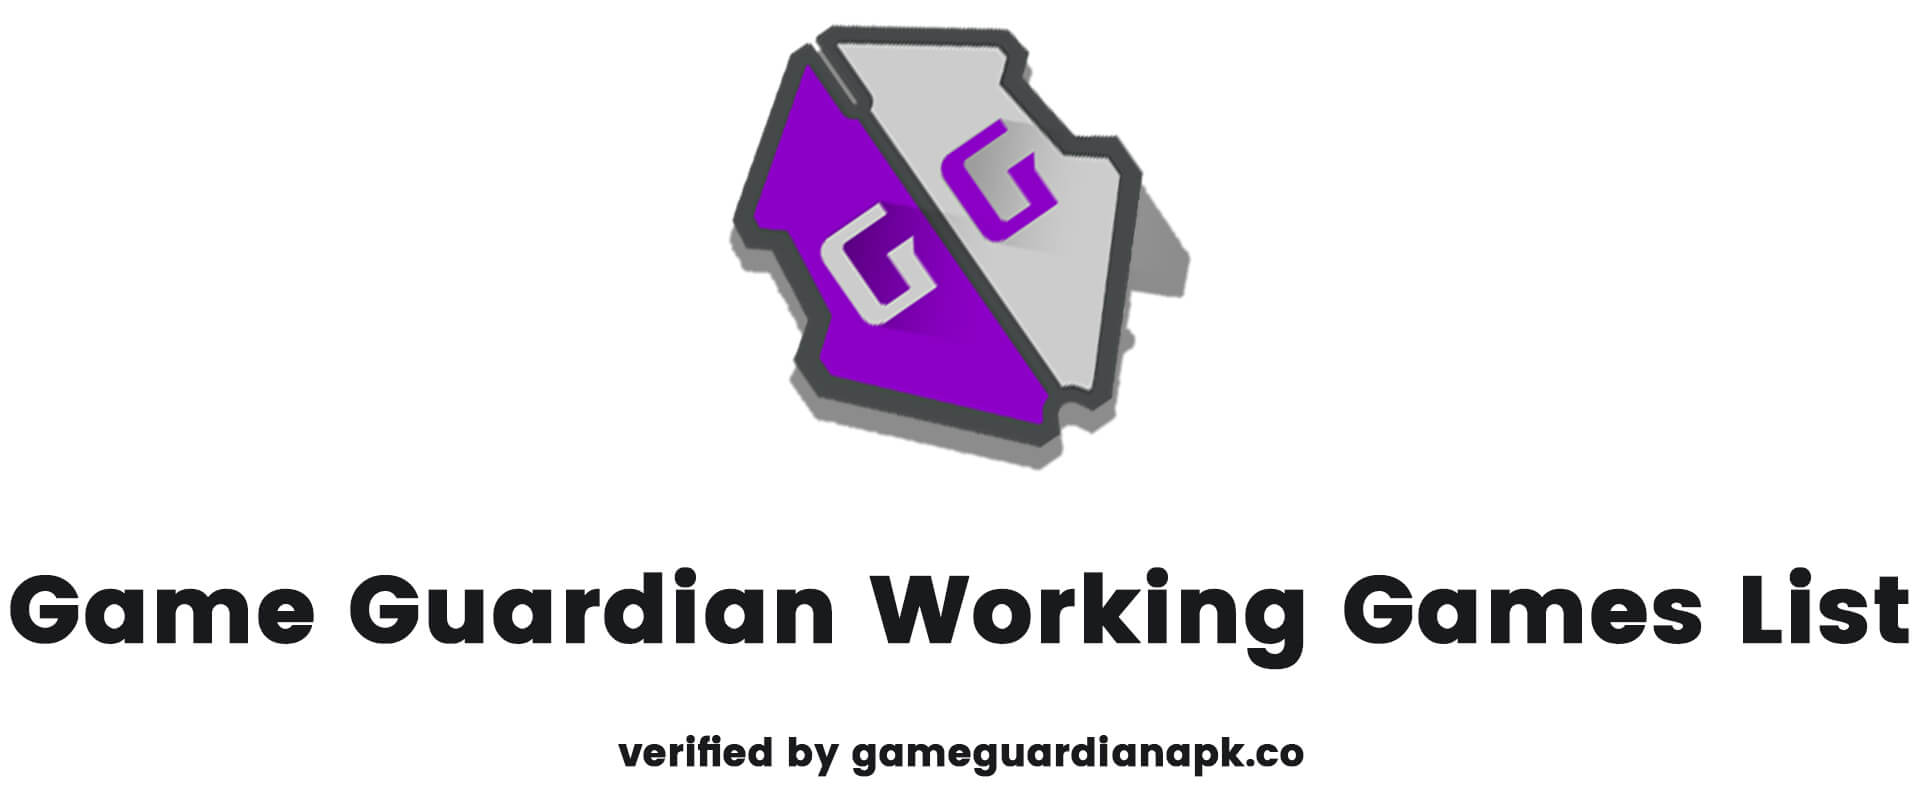 Game Guardian Working Games List